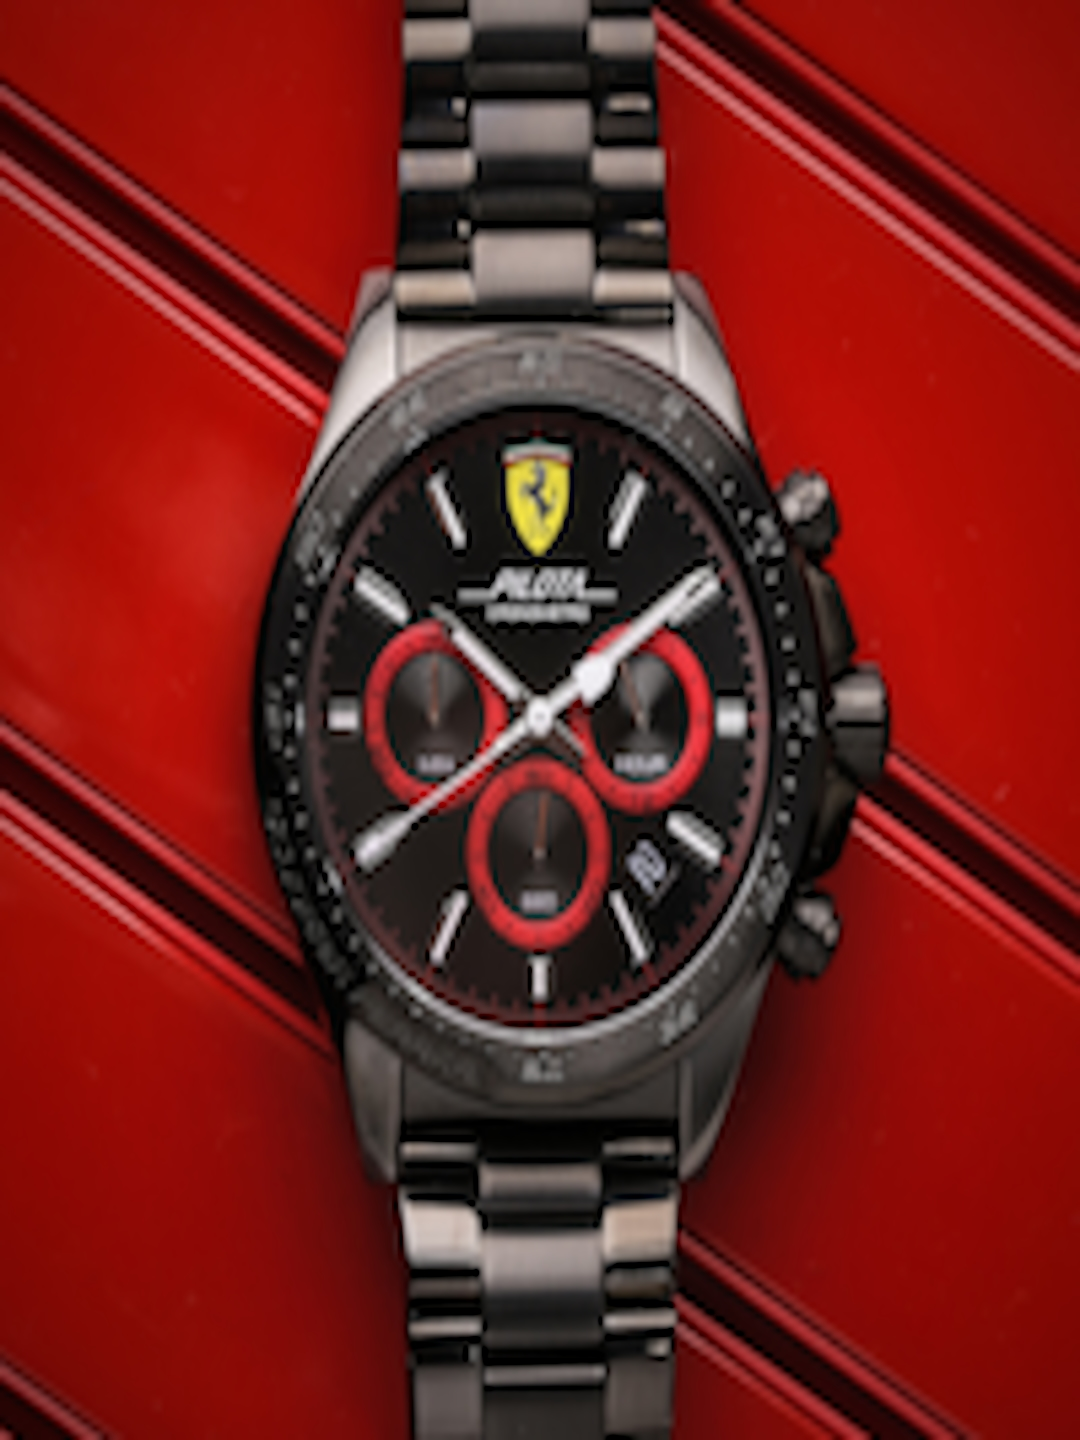 watch black men ferrari s watches dial sports fxx